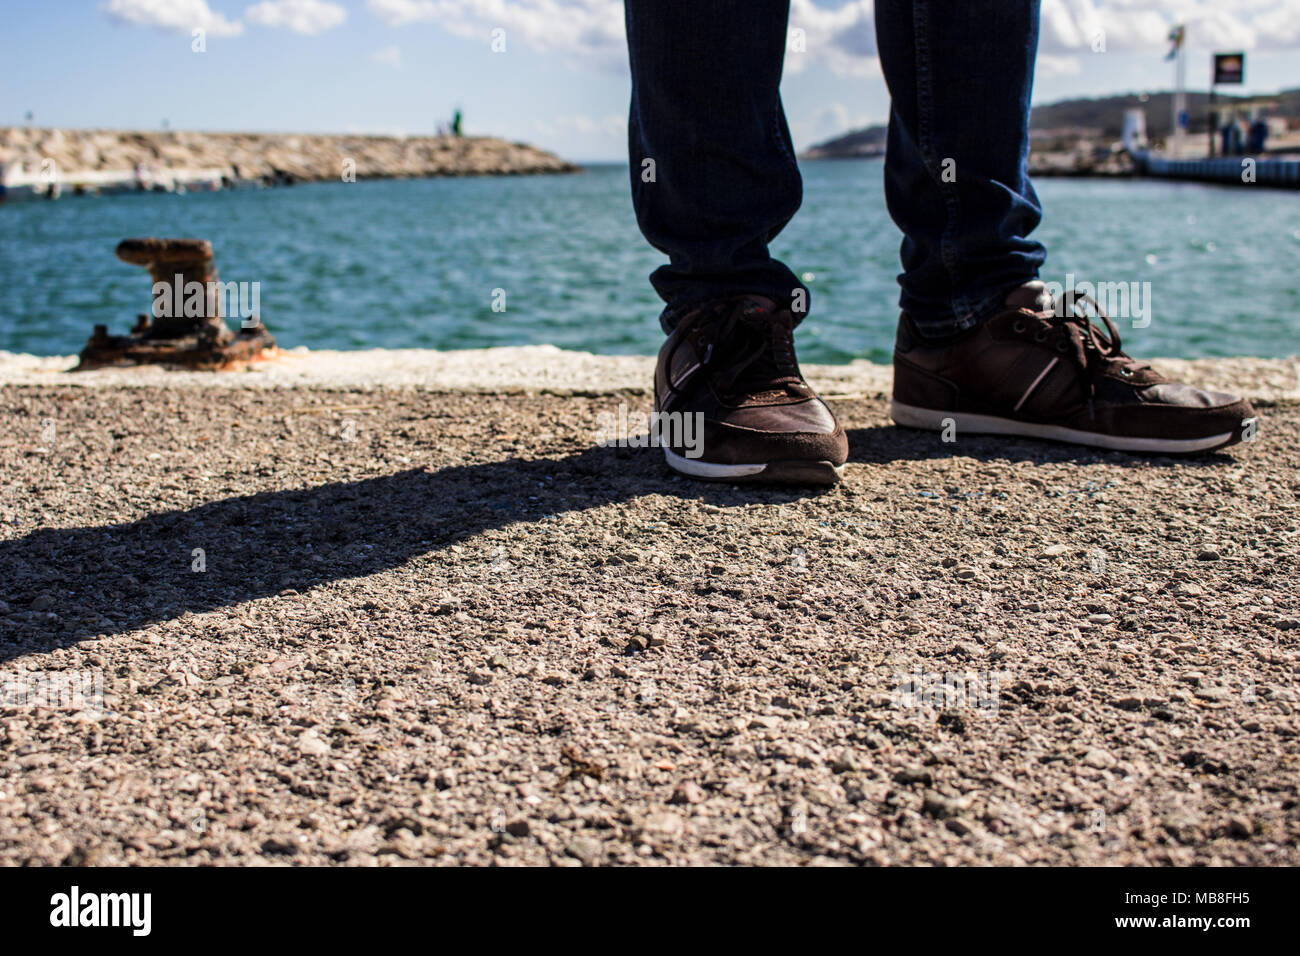 Shoes. A man in casual shoes on a pier near the sea. - Stock Image